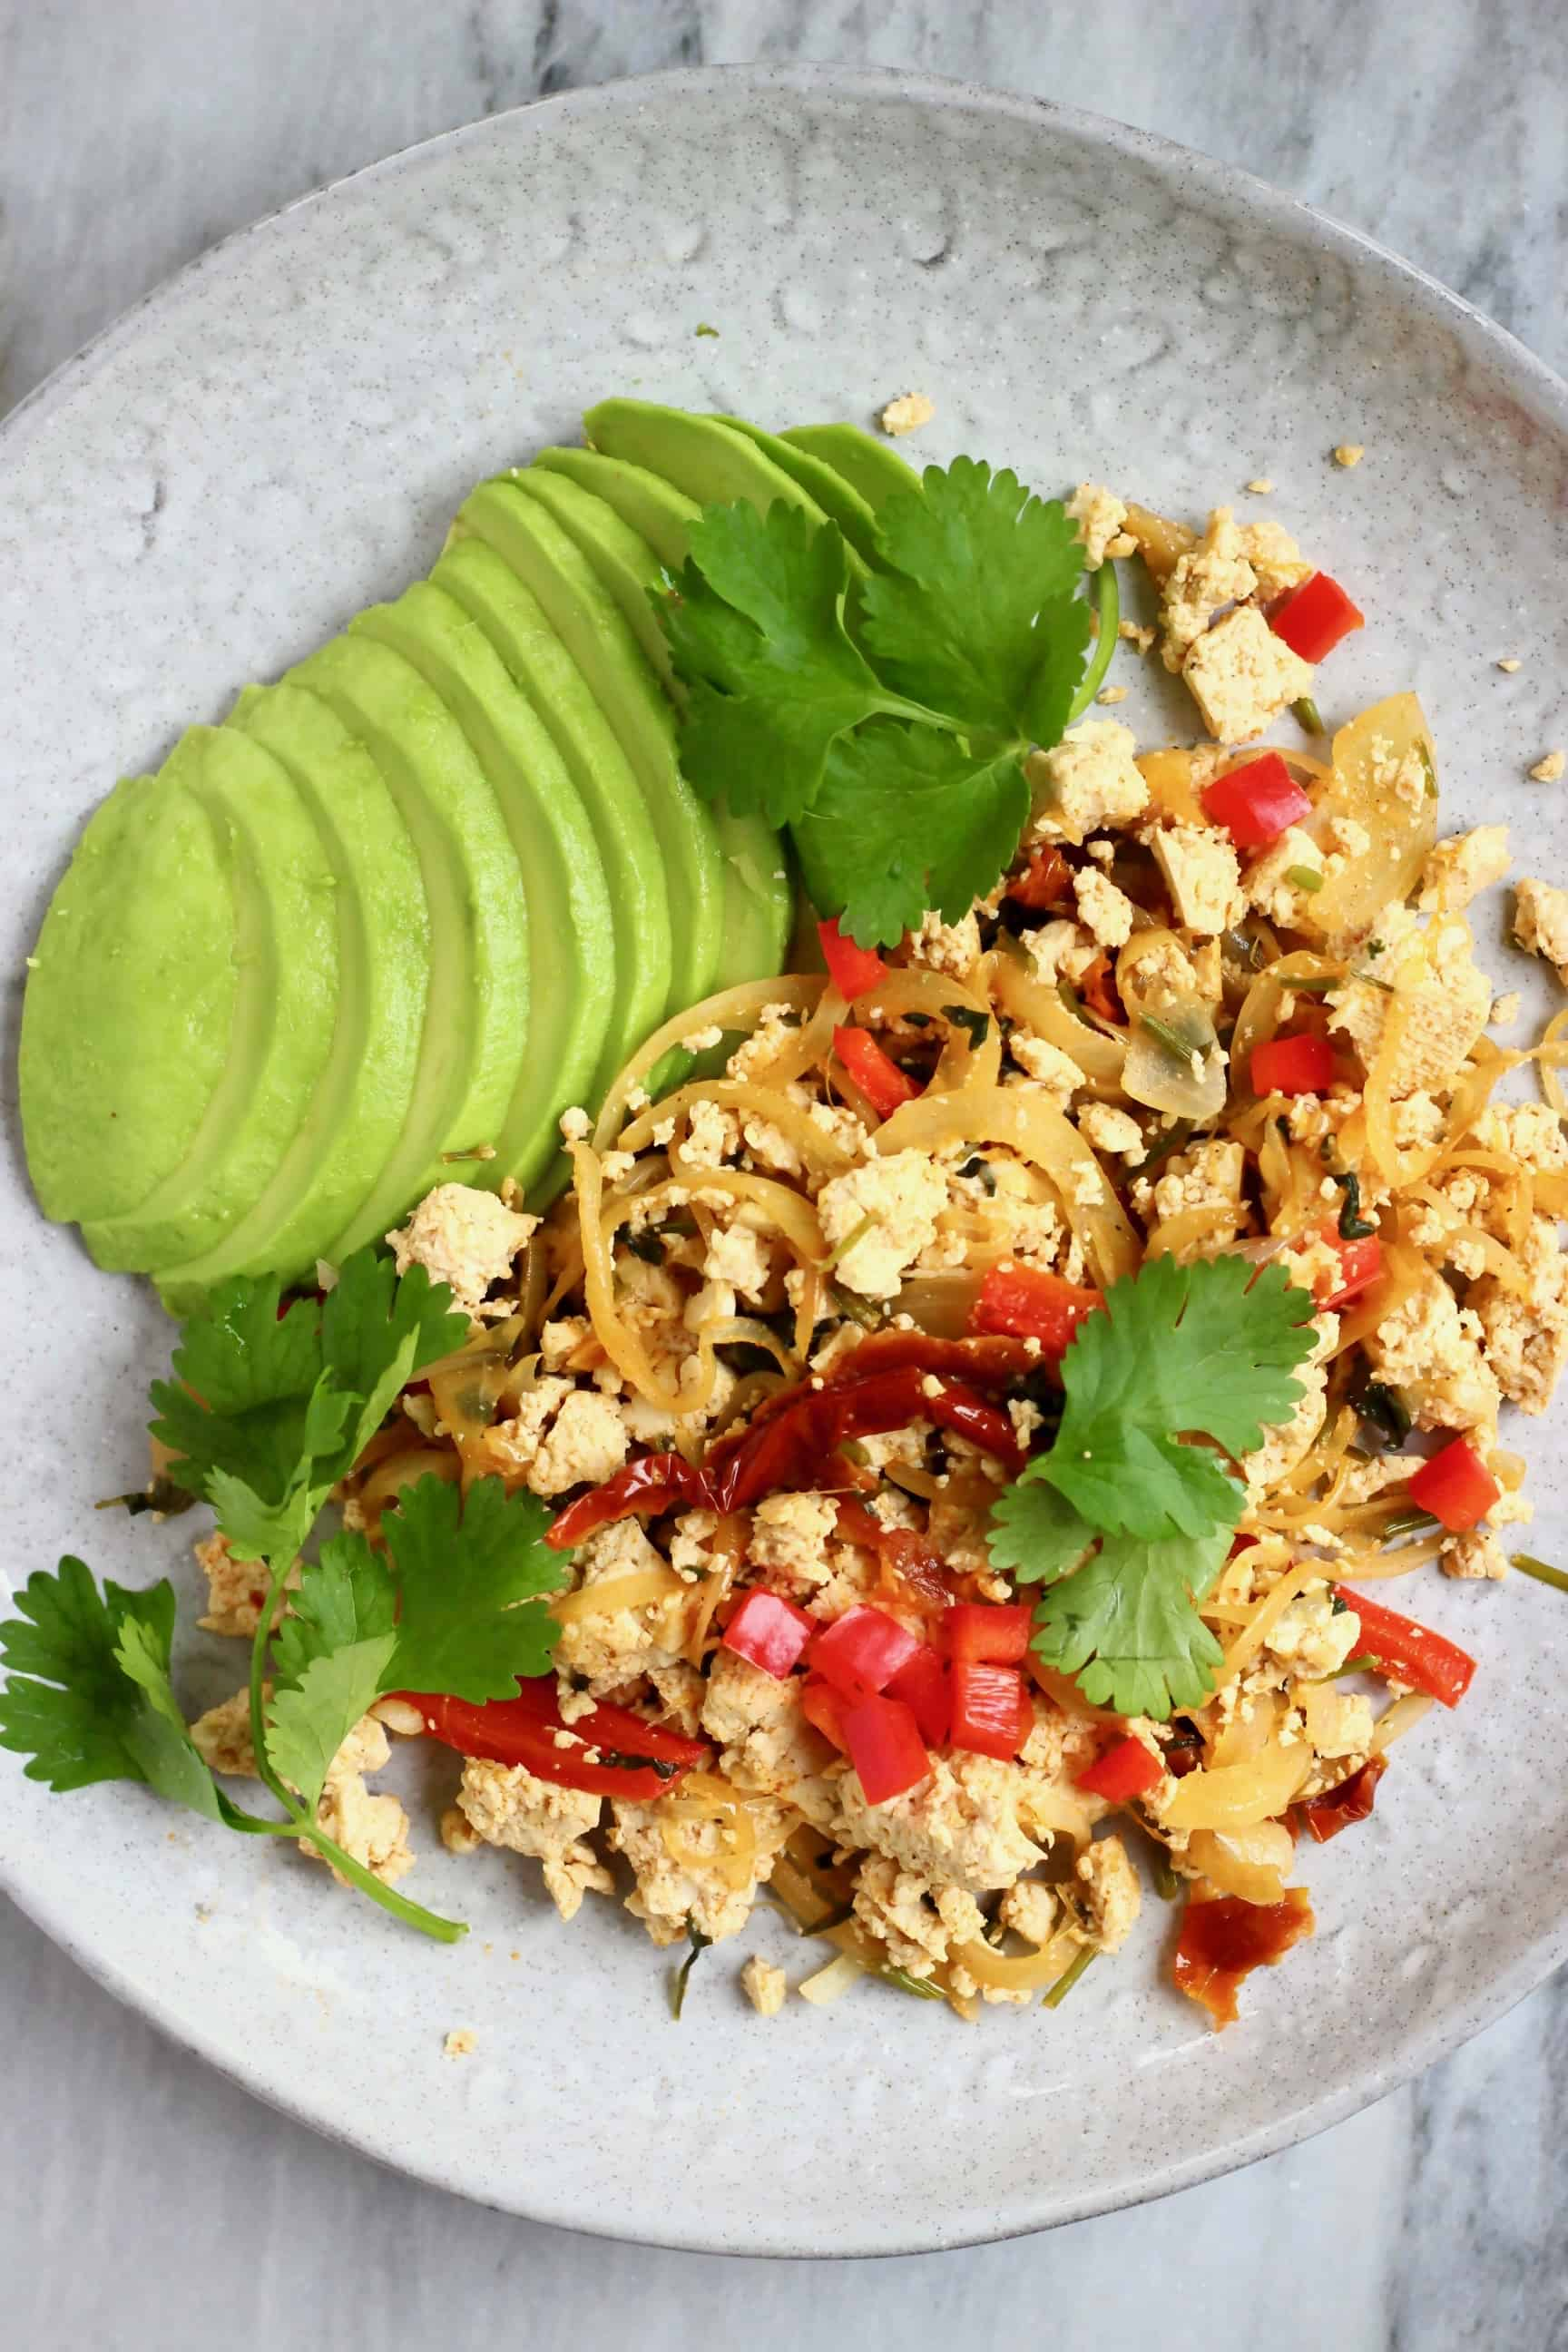 Scrambled tofu with red peppers and a sliced avocado on a grey plate against a marble background